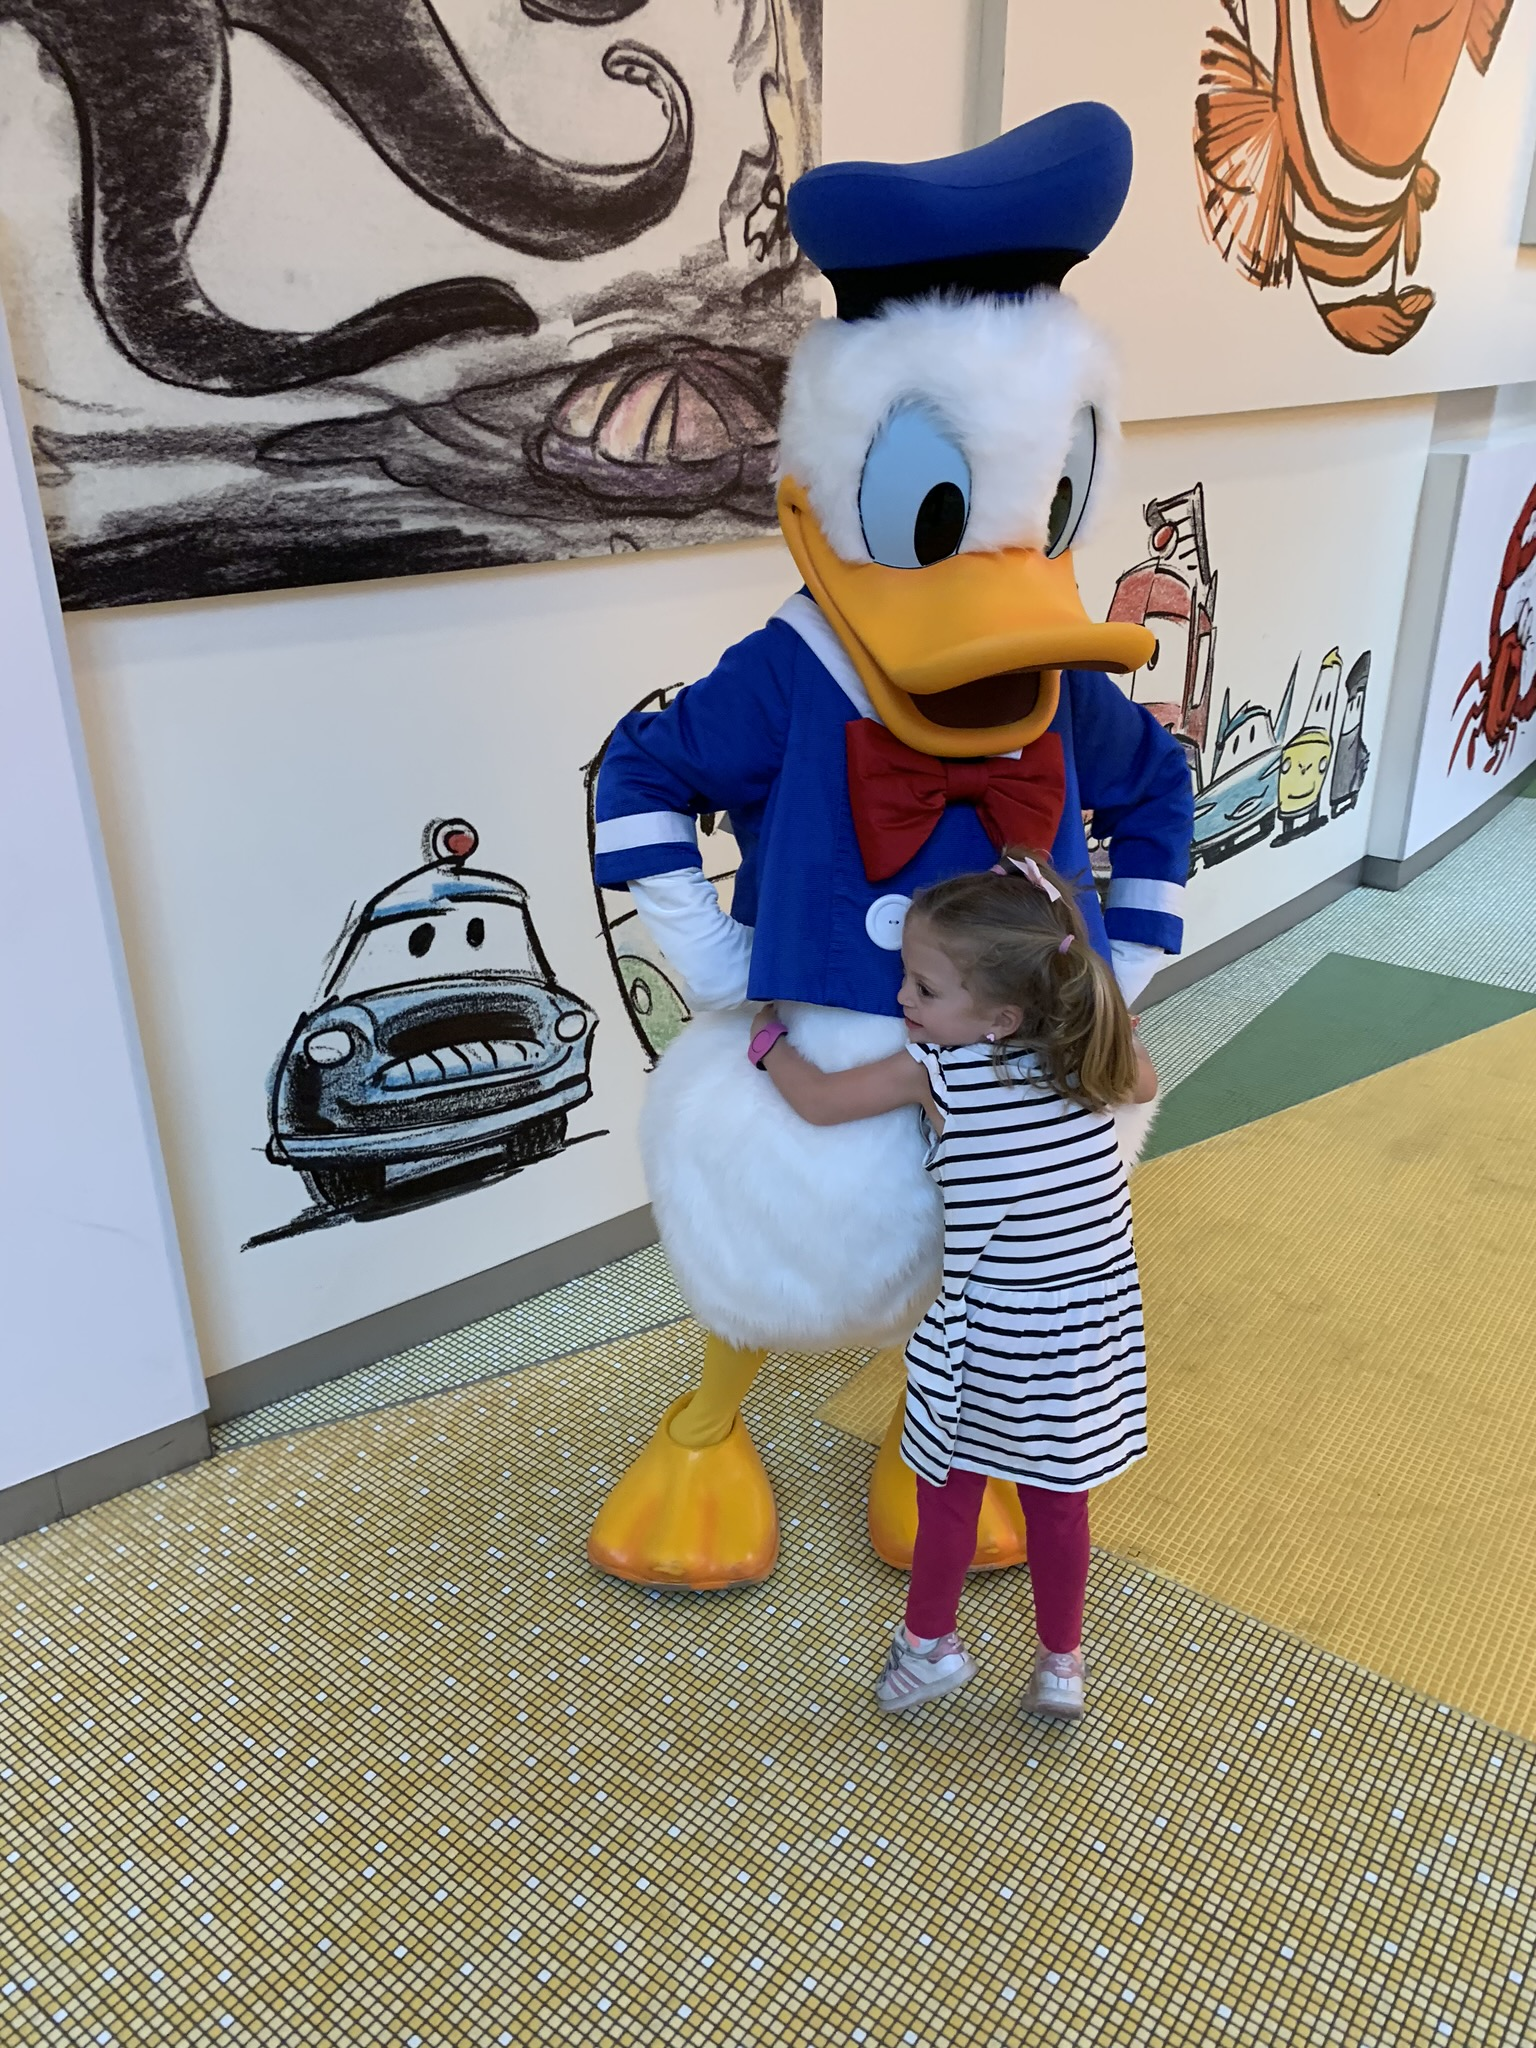 Back at the hotel as they were checking out, Robby and Lucie ran into Donald...